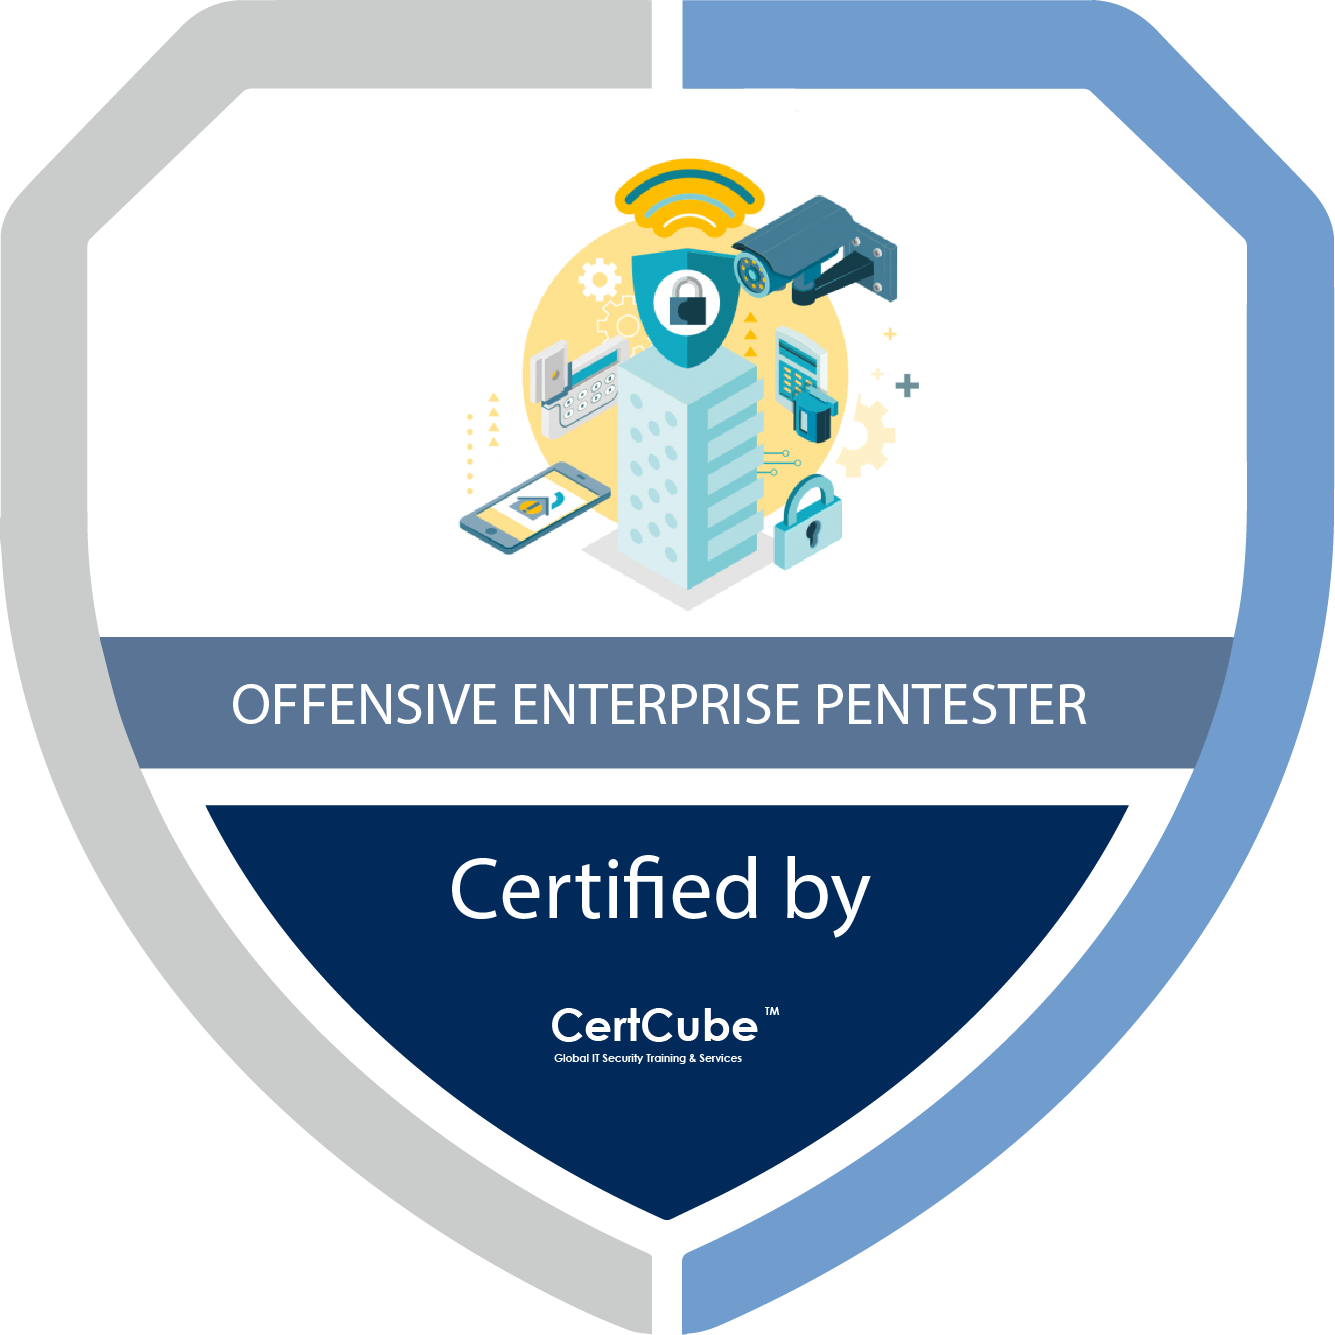 offensive enterprise pentester Associate 1